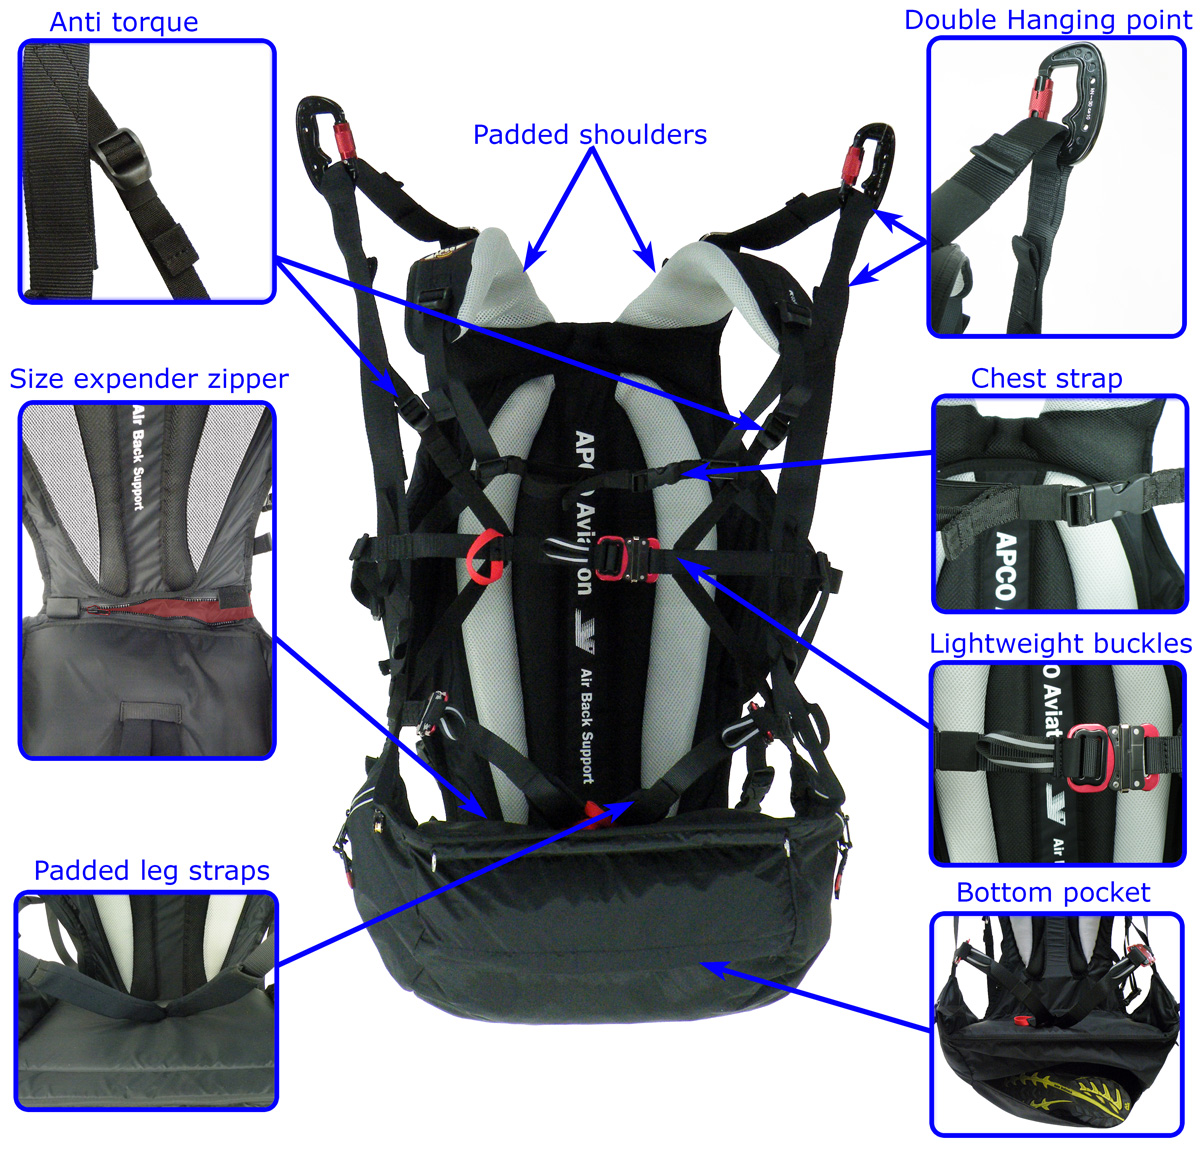 SLT PM High Hook-In harness features